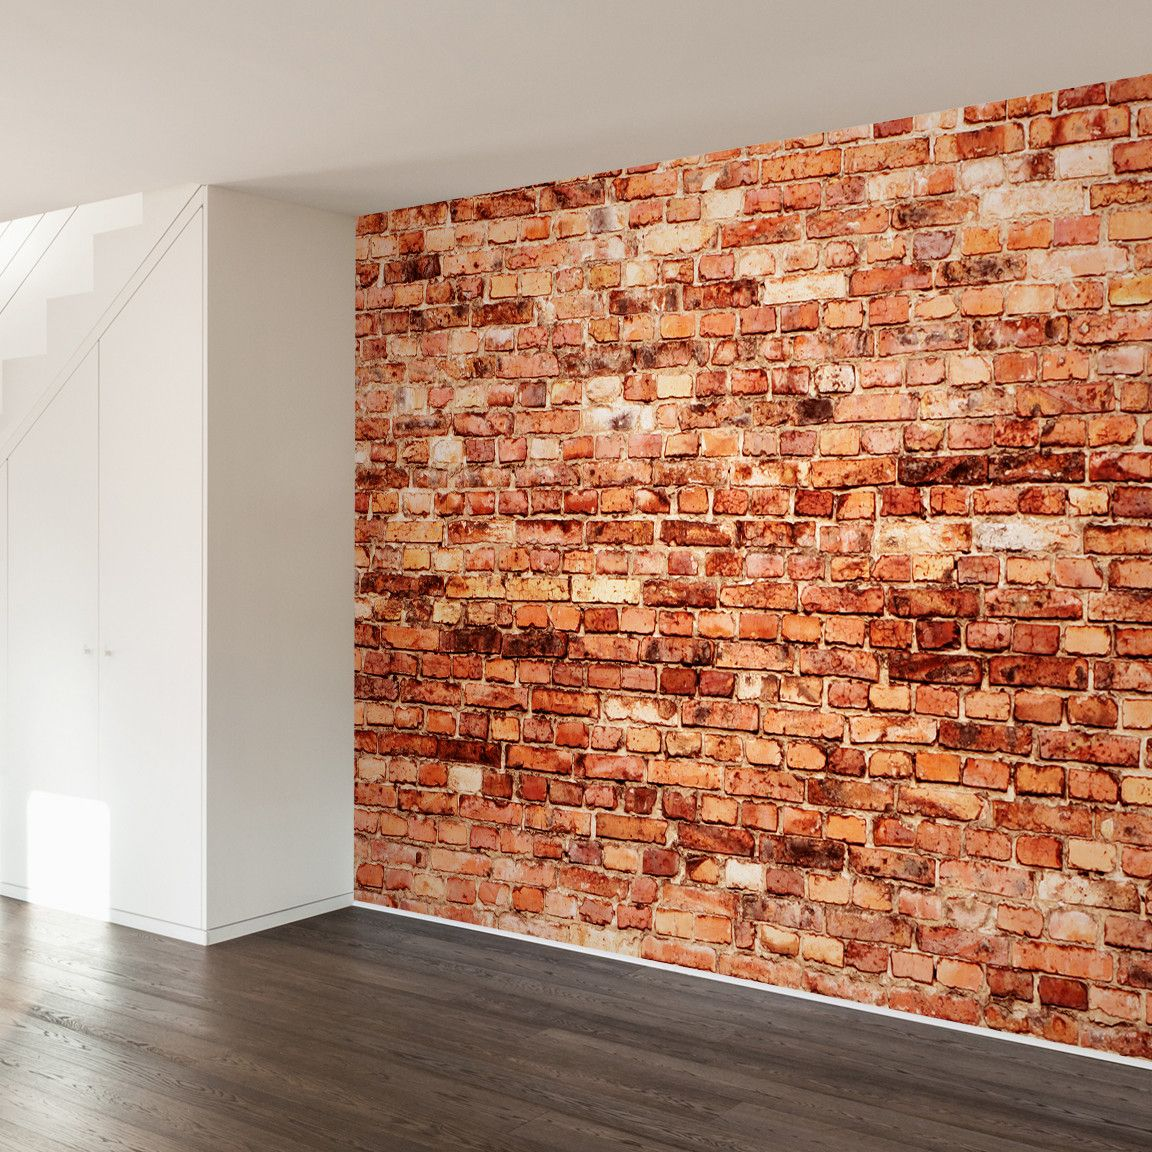 Vertical Brick Wall Accents Wall Decal: Industrial Chic Wall Mural Decal - Dot & Bo